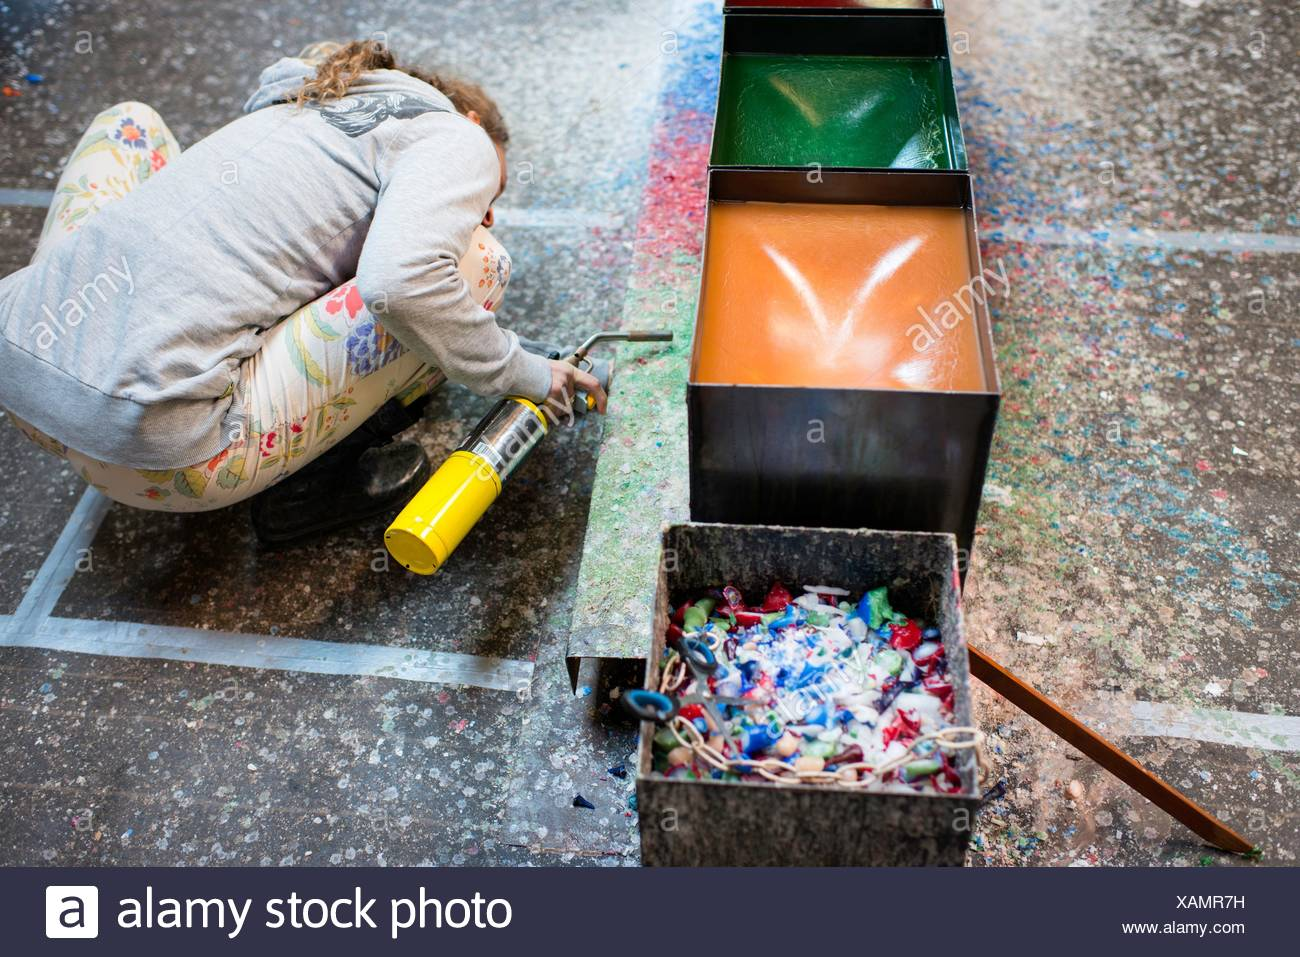 Female candlemaker crouching to melt wax with blowtorch - Stock Image